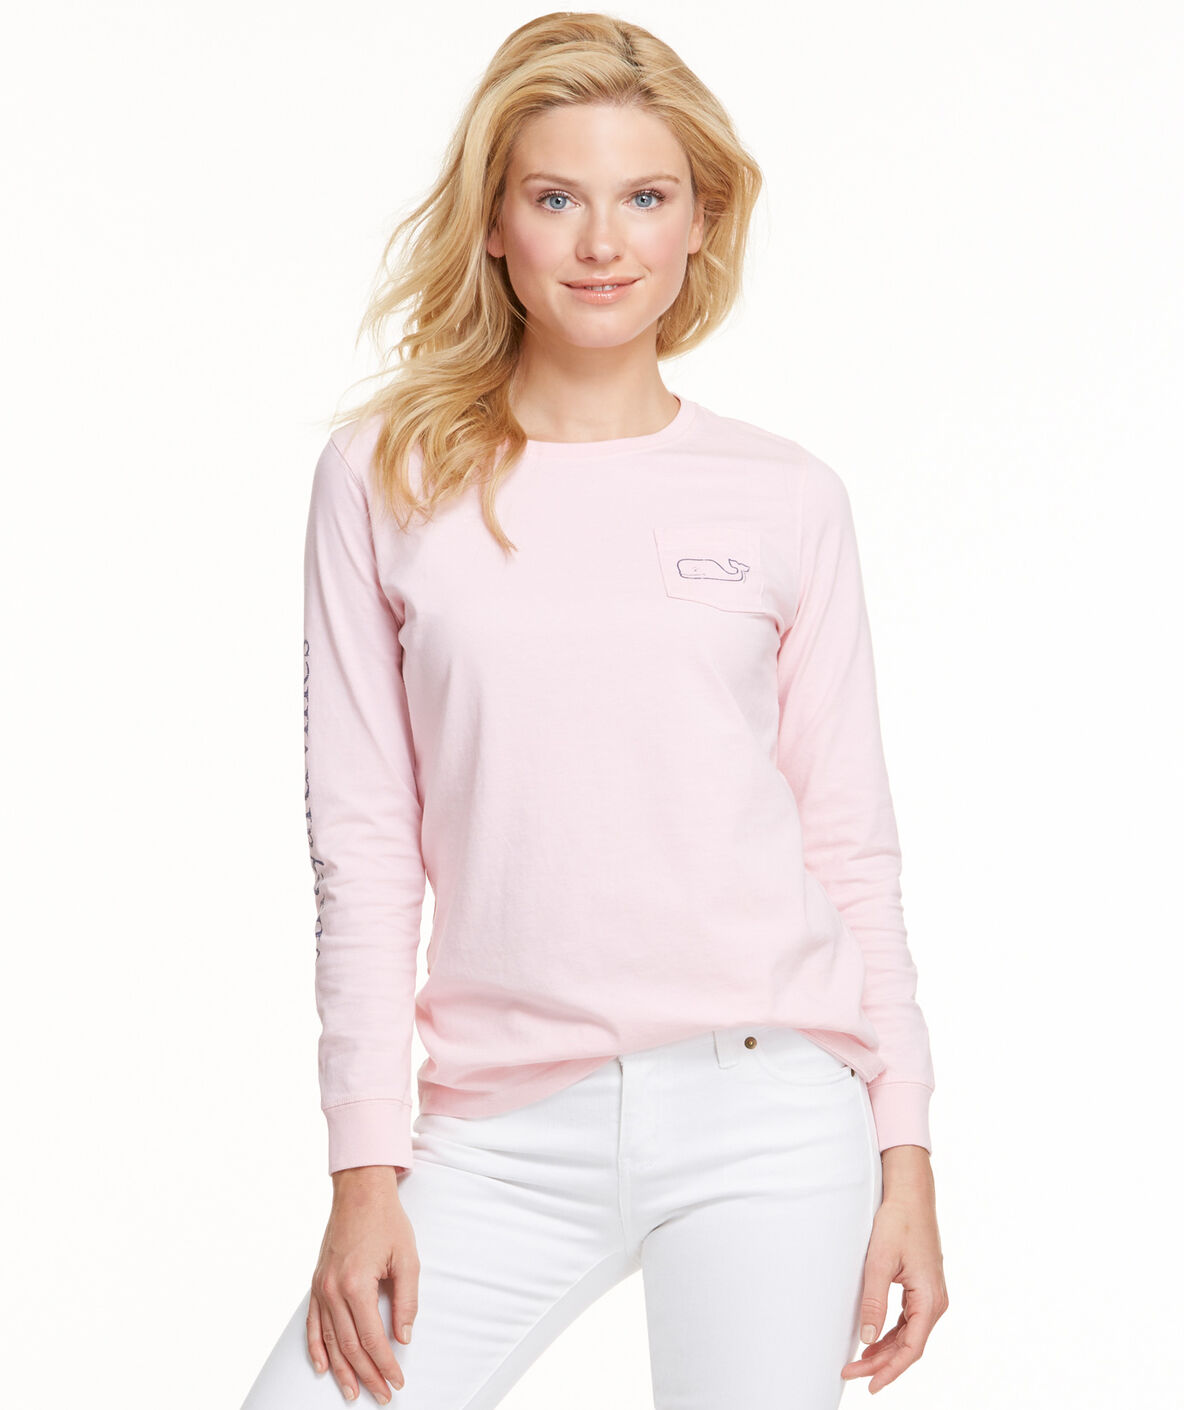 Shop Long-Sleeve Whale Pocket Graphic Tee at vineyard vines